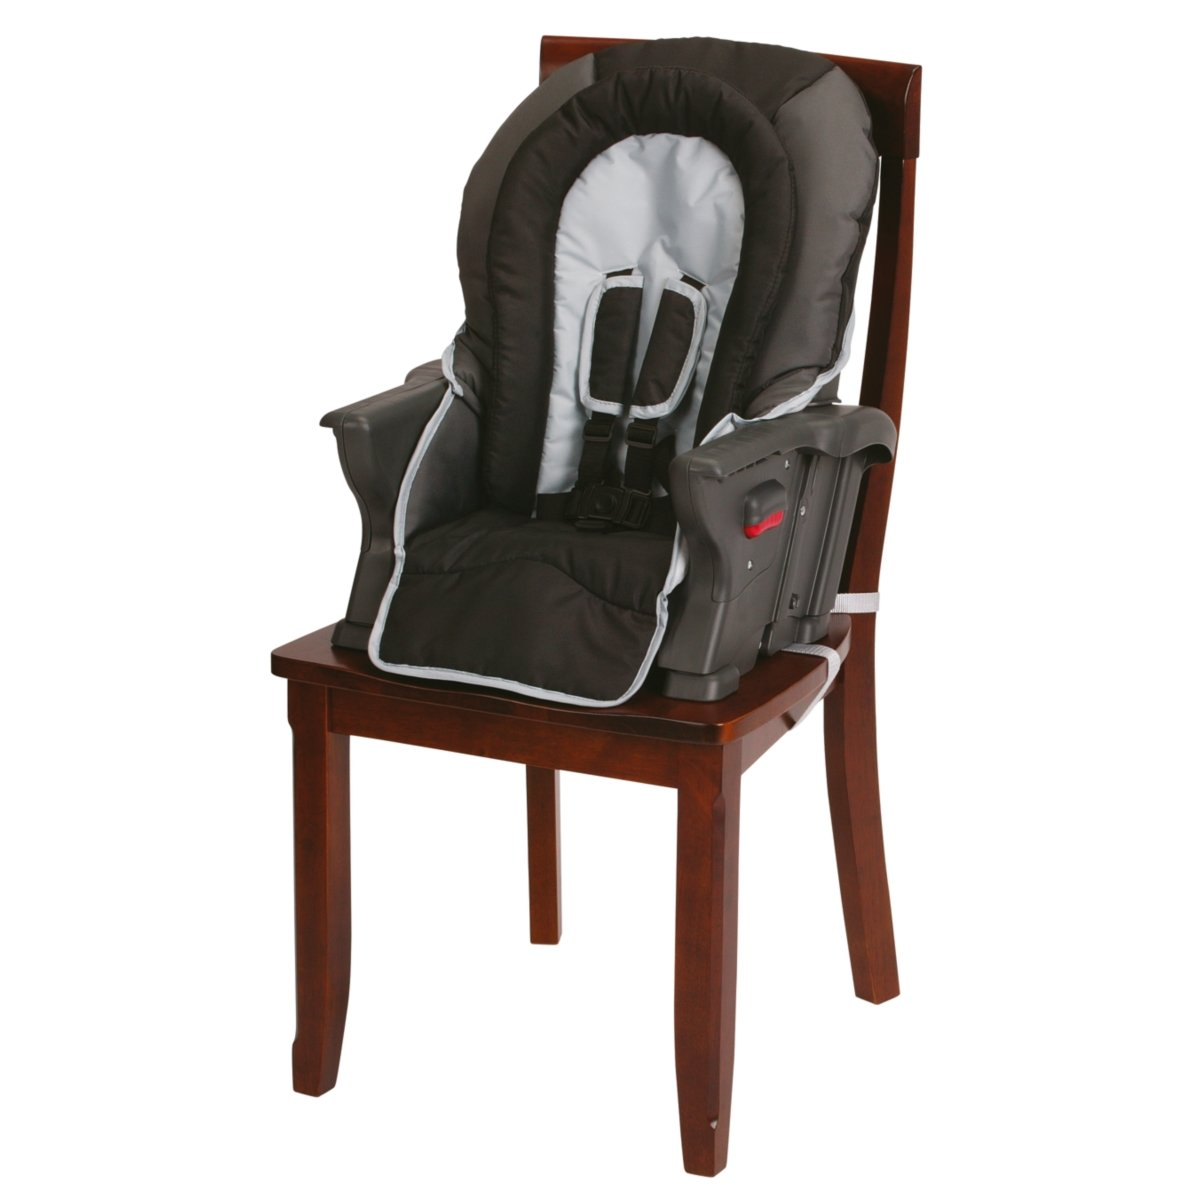 graco duodiner high chair cover replacement love bag galleon lx metropolis